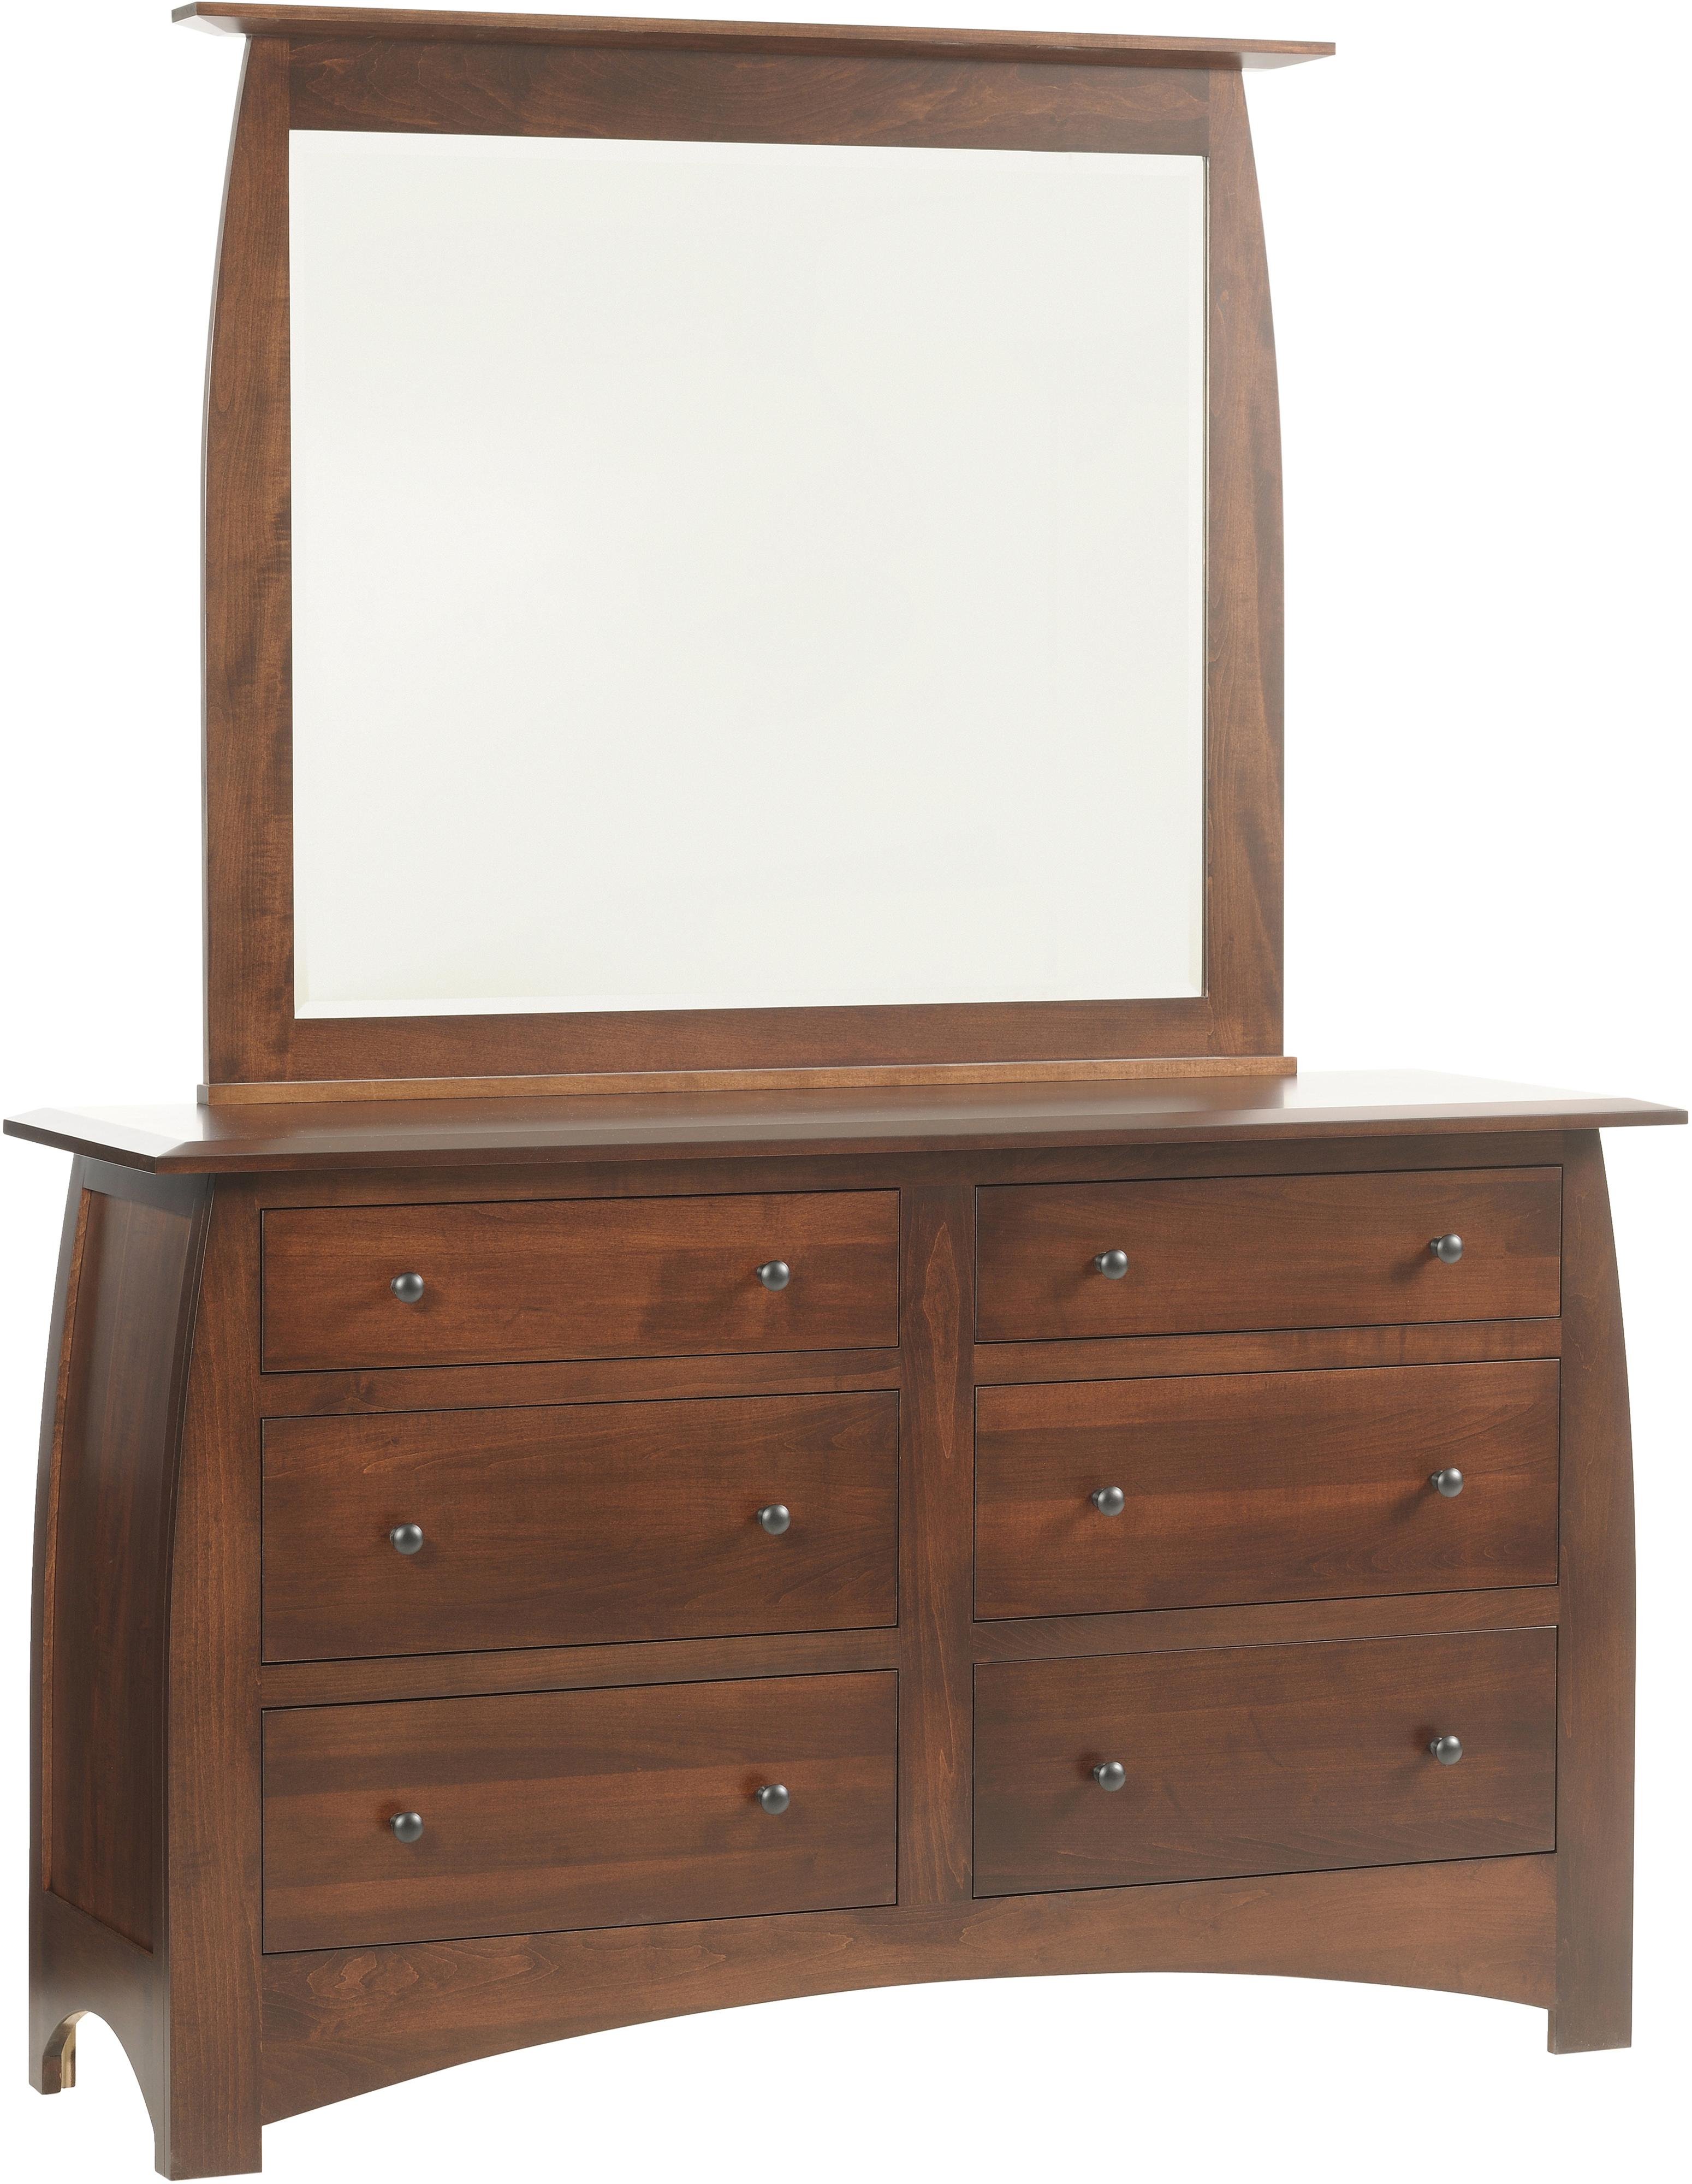 Bordeaux Dresser and Mirror by Millcraft at Saugerties Furniture Mart